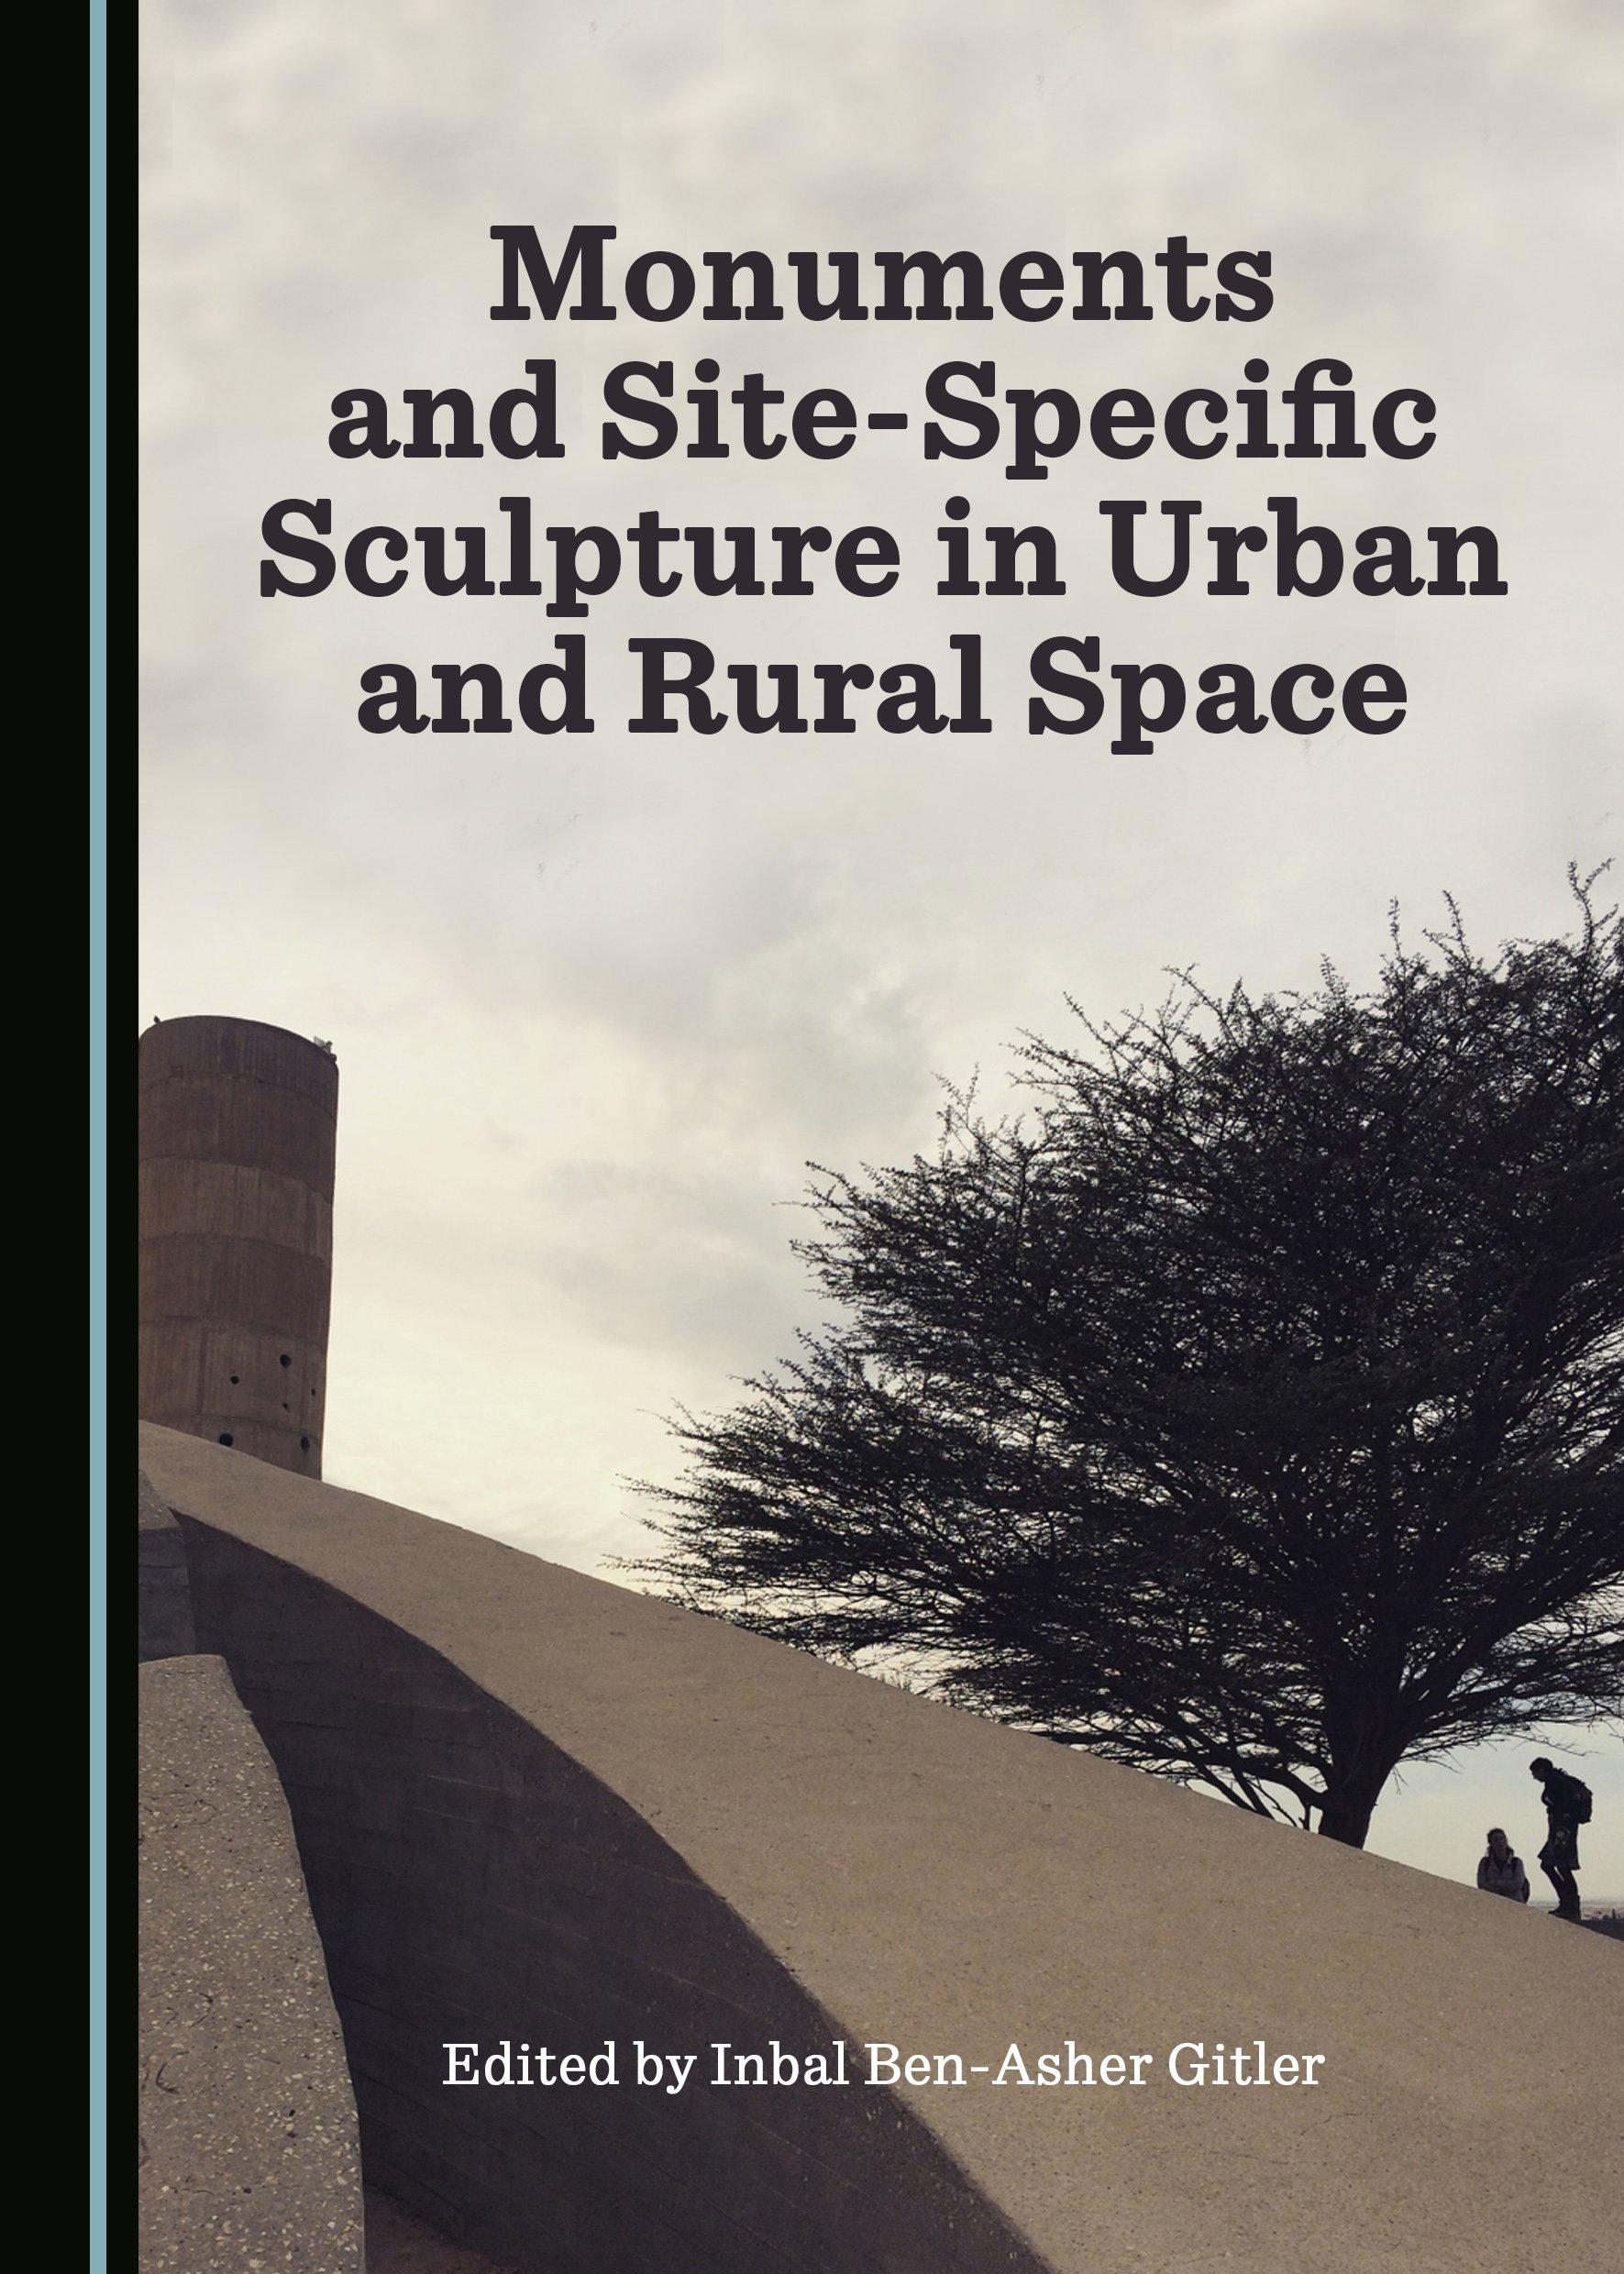 Monuments and Site-Specific Sculpture in Urban and Rural Space